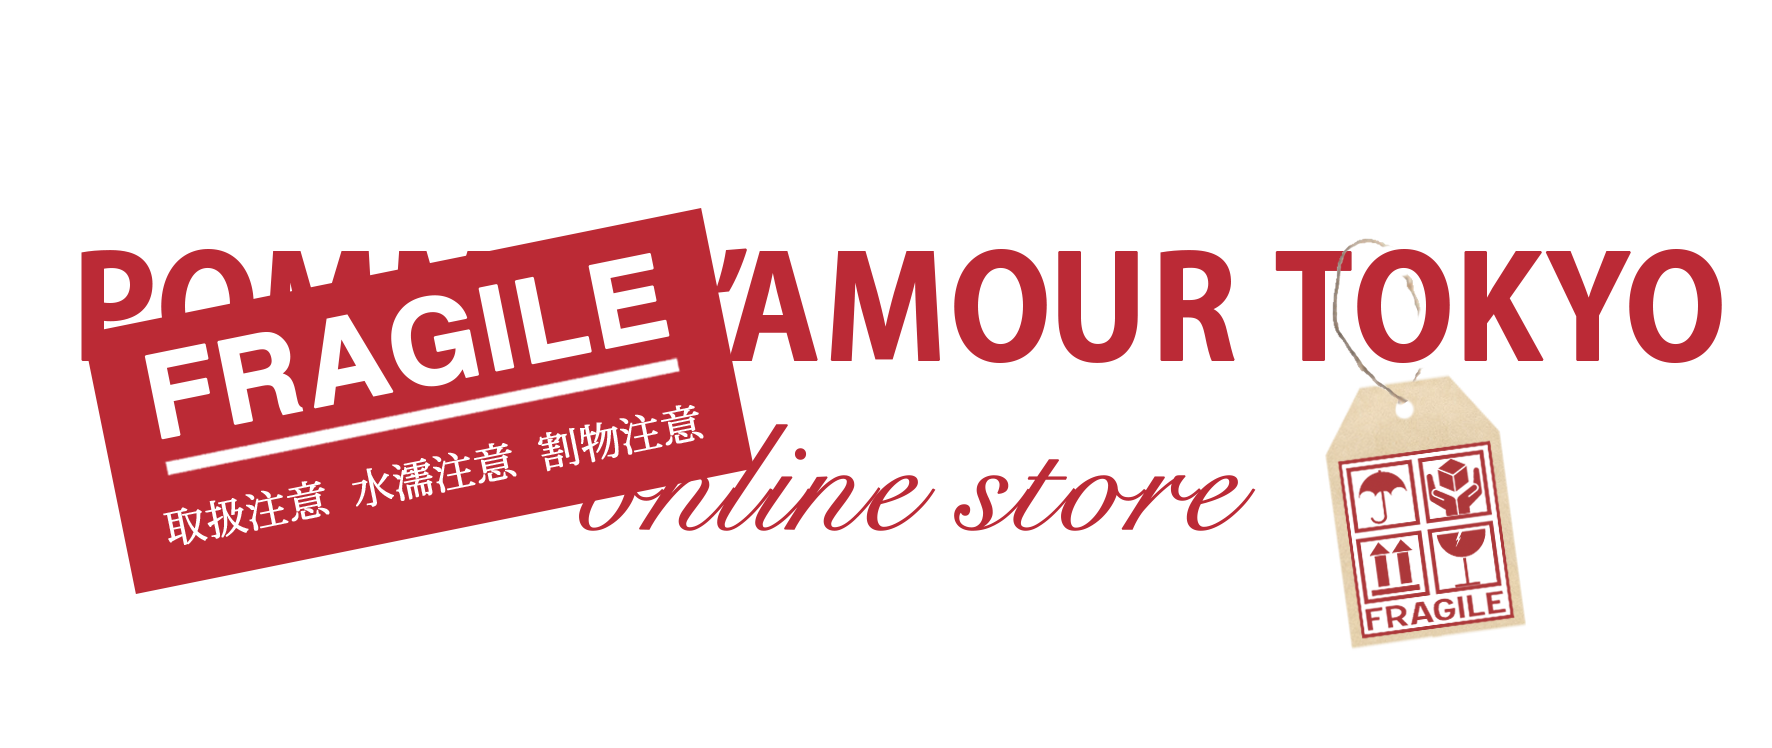 POMME d'AMOUR TOKYO online store -FRAGILE 'AMOUR-